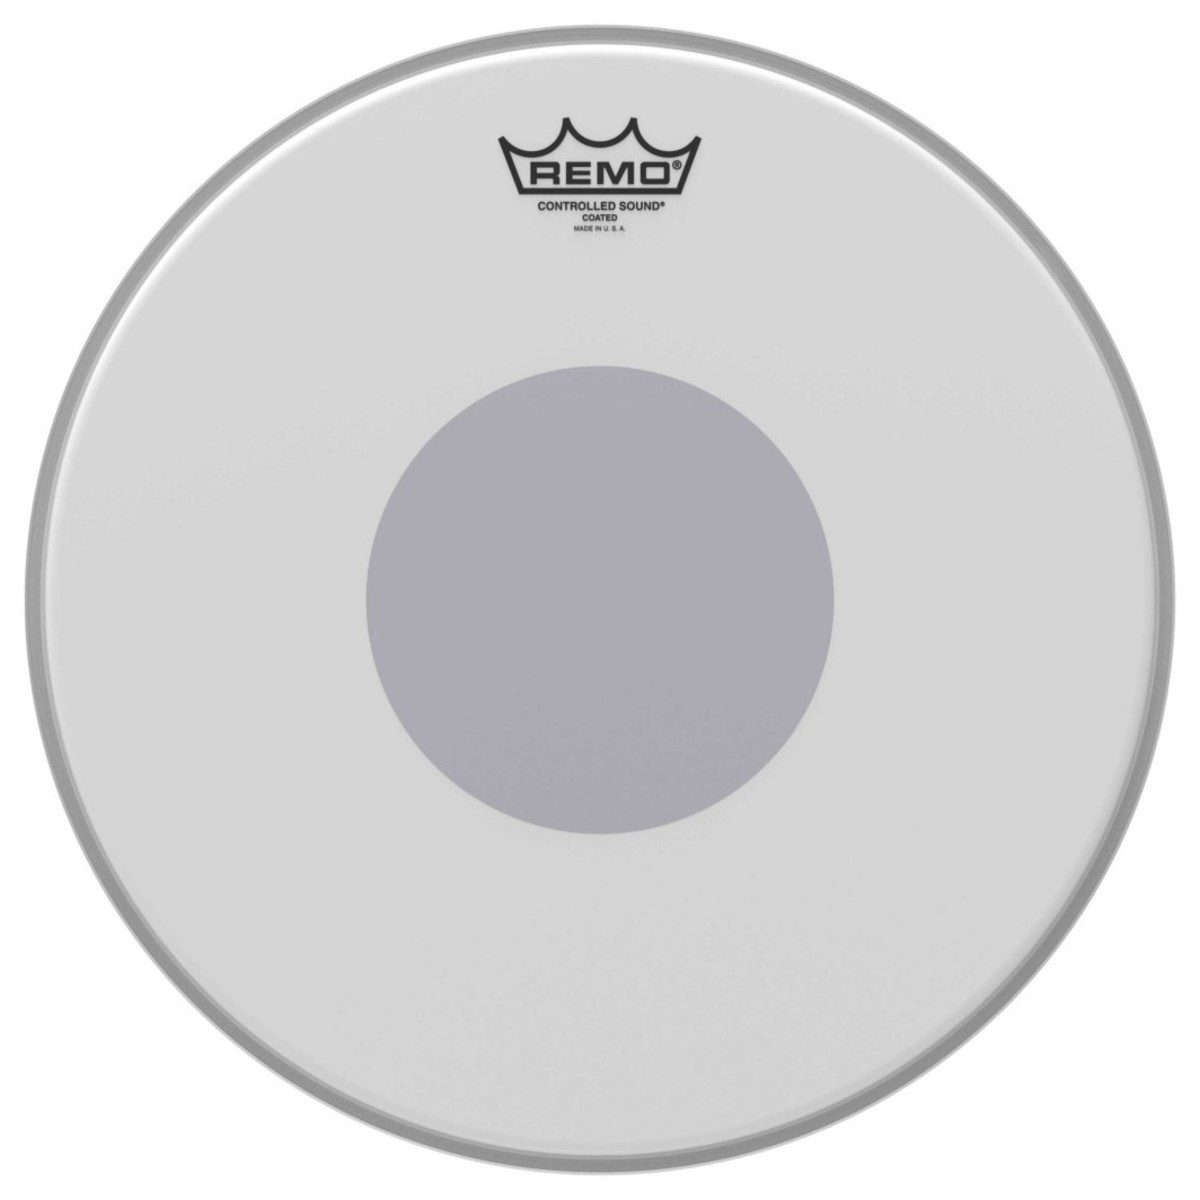 remo controlled sound coated 14 39 39 reverse black dot snare drum head at gear4music. Black Bedroom Furniture Sets. Home Design Ideas